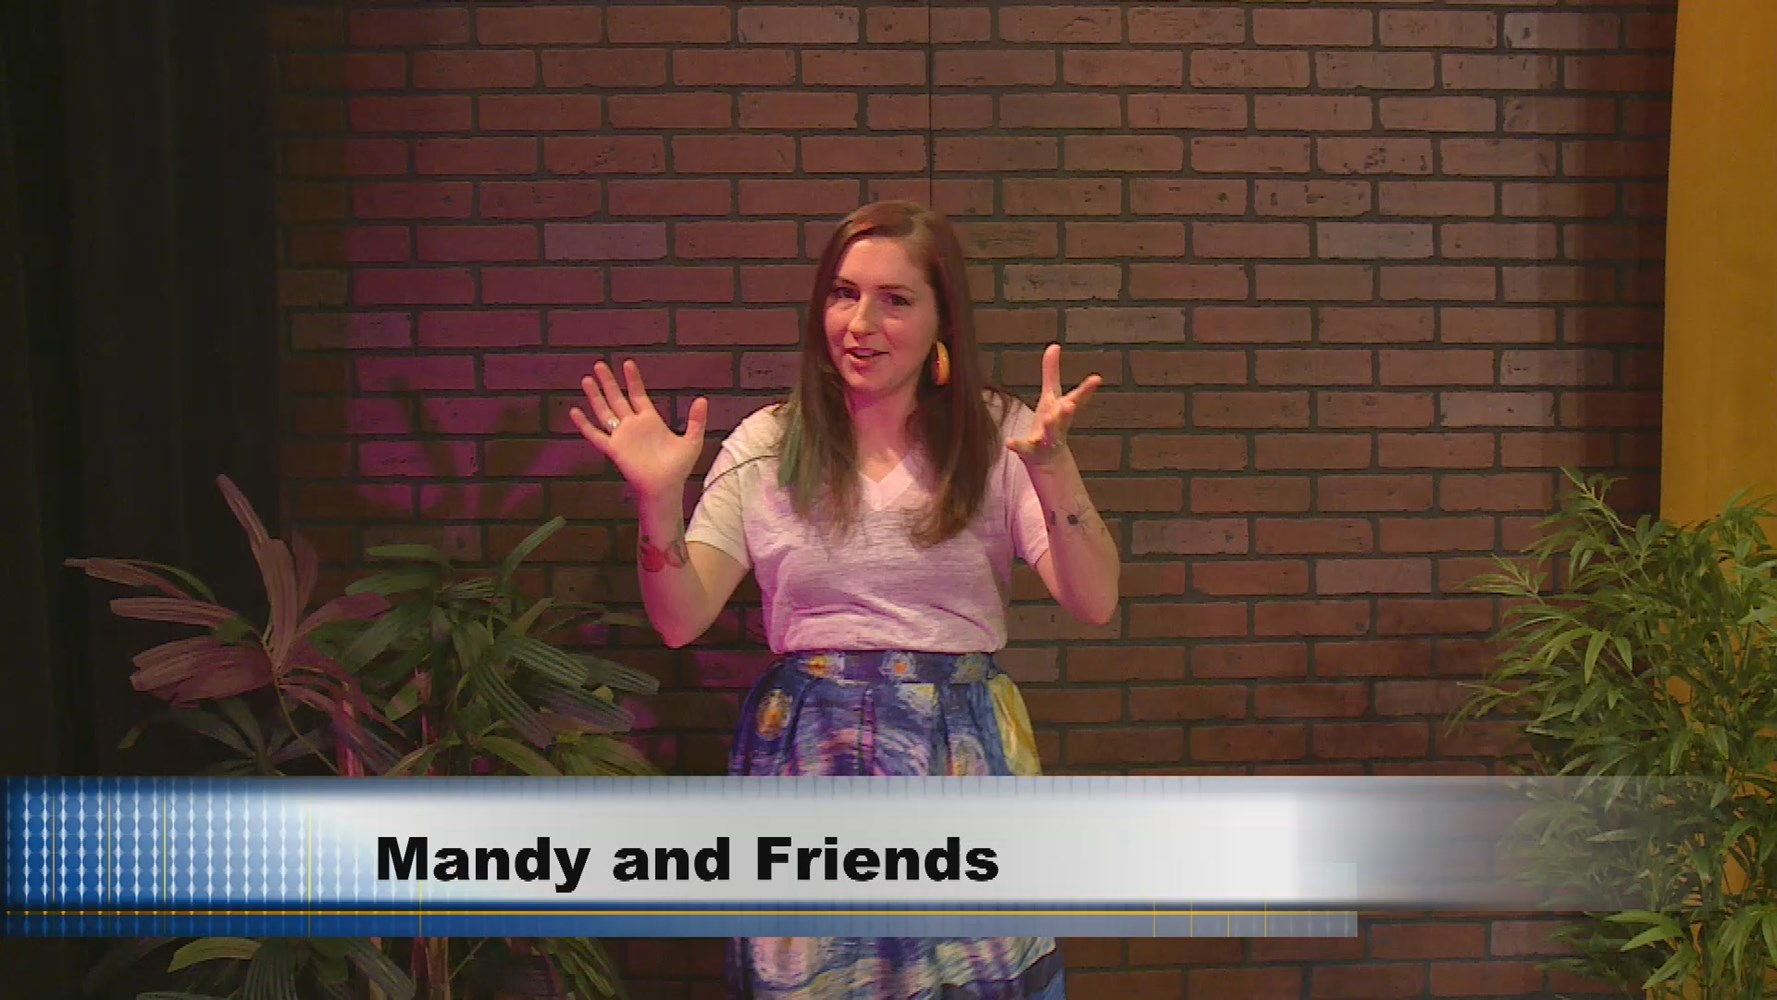 Mandy and Friends Season 2: Episode 1